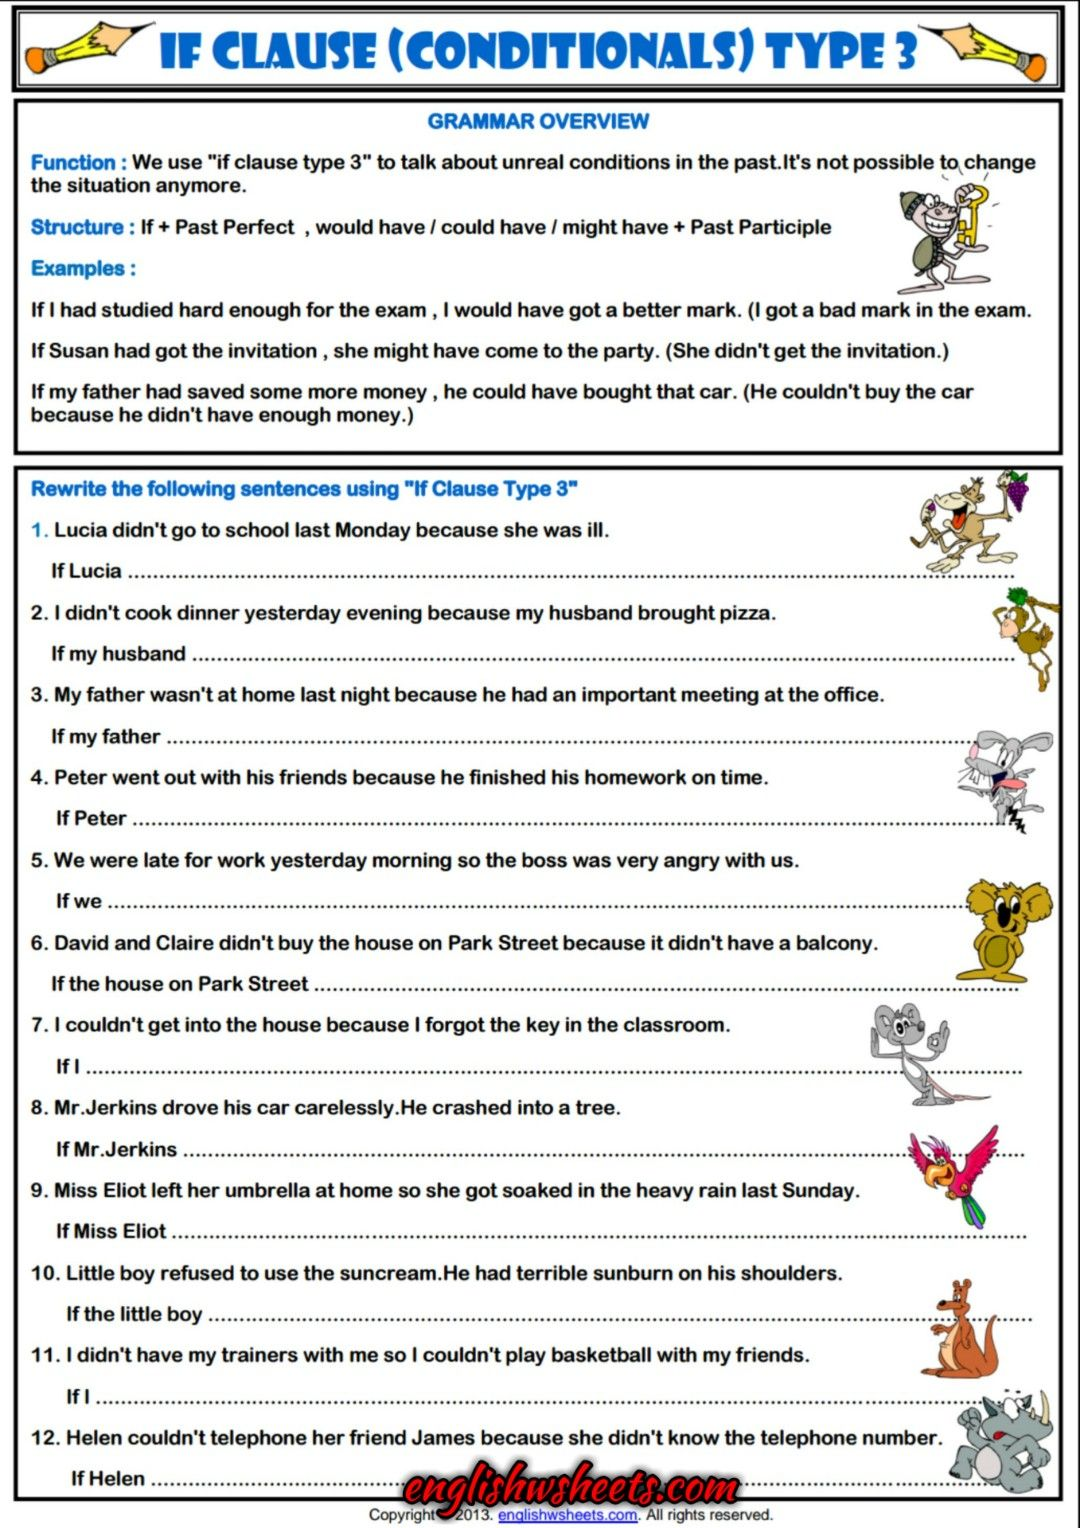 Conditionals Type 3 Esl Grammar Exercises Worksheet